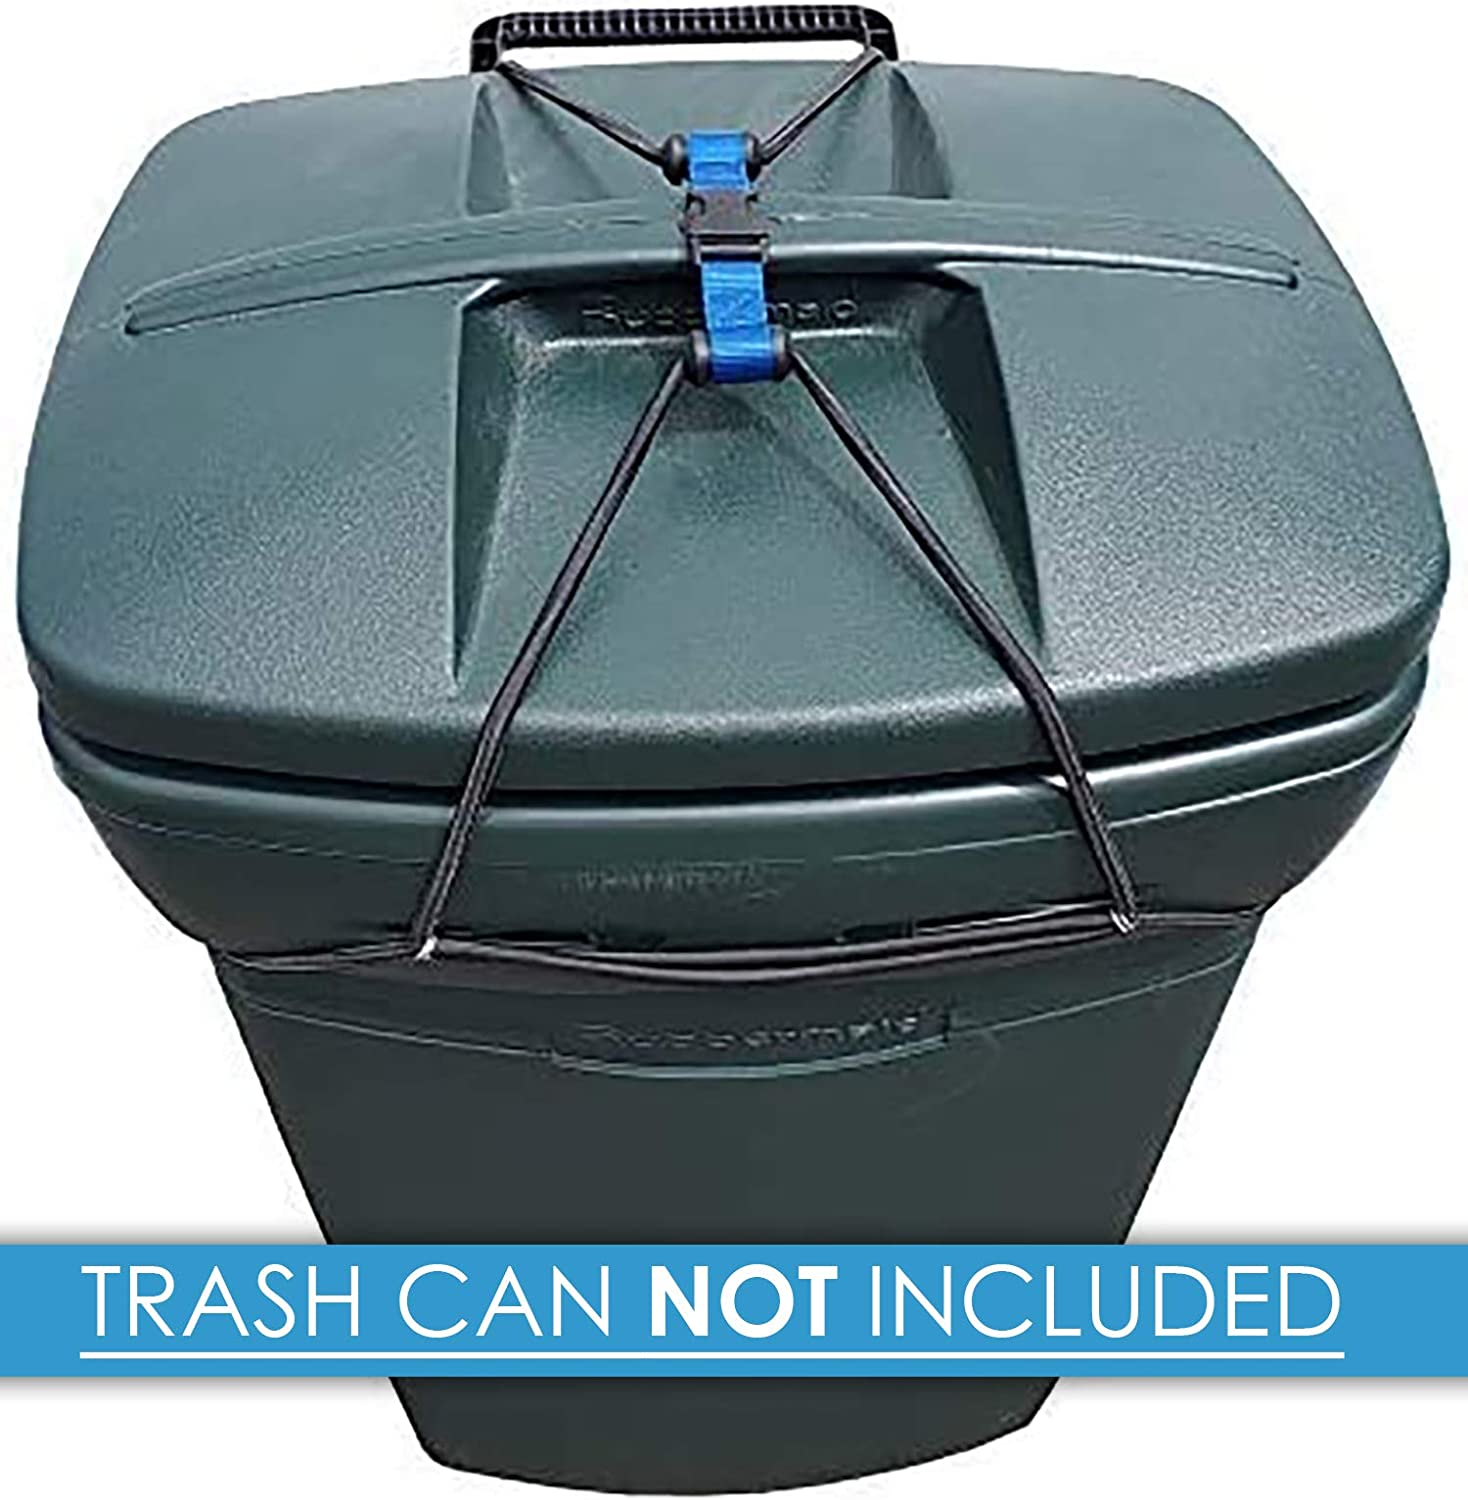 Amazon Com Doggy Dare Trash Can Lock Large Fits 45 Gallon Cans Home Kitchen